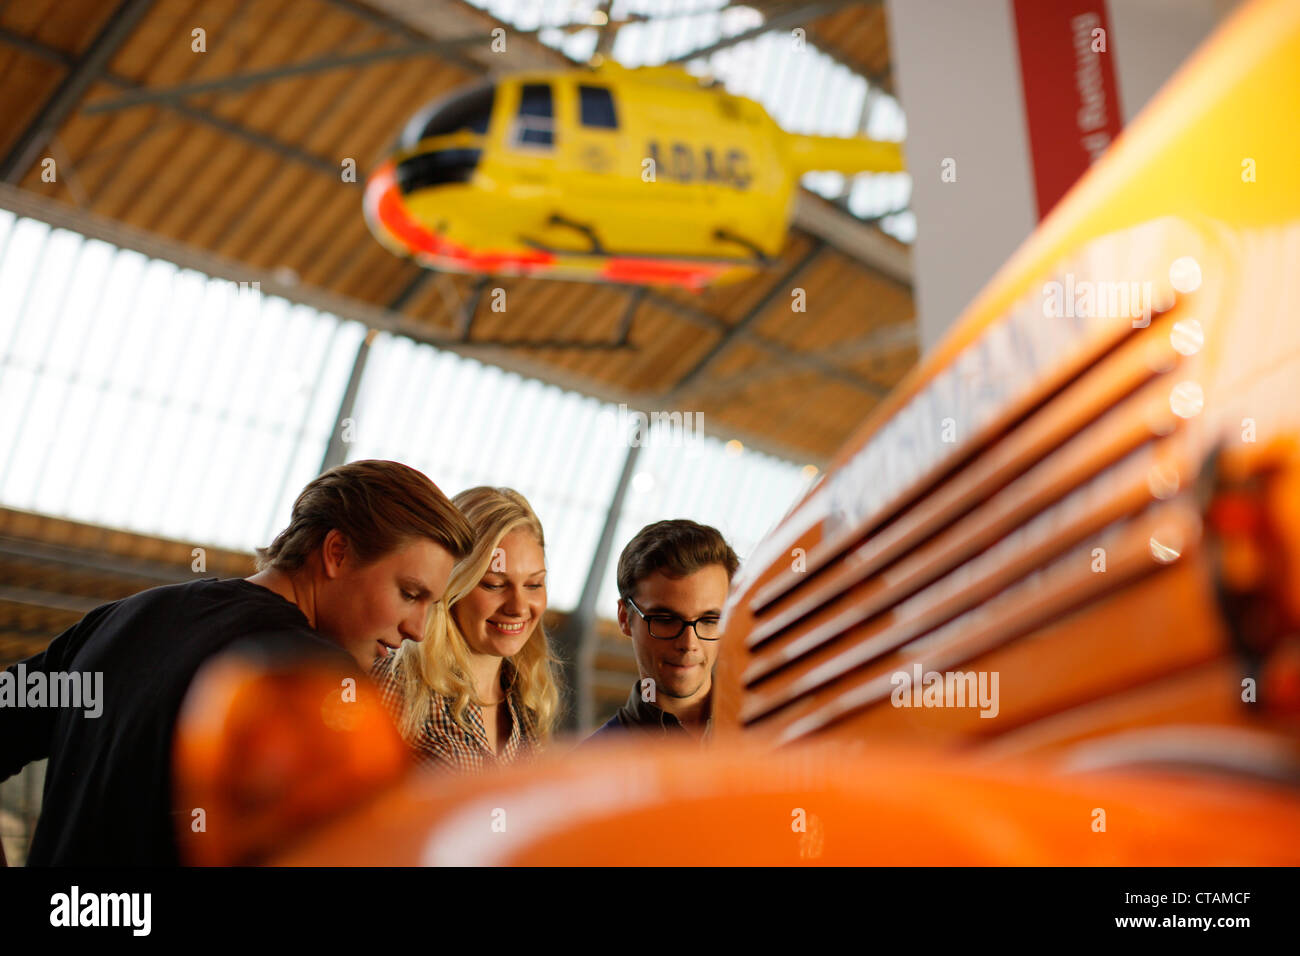 Students in the Transport Museum, Deutsches Museum, German Museum, Munich, Bavaria, Germany - Stock Image